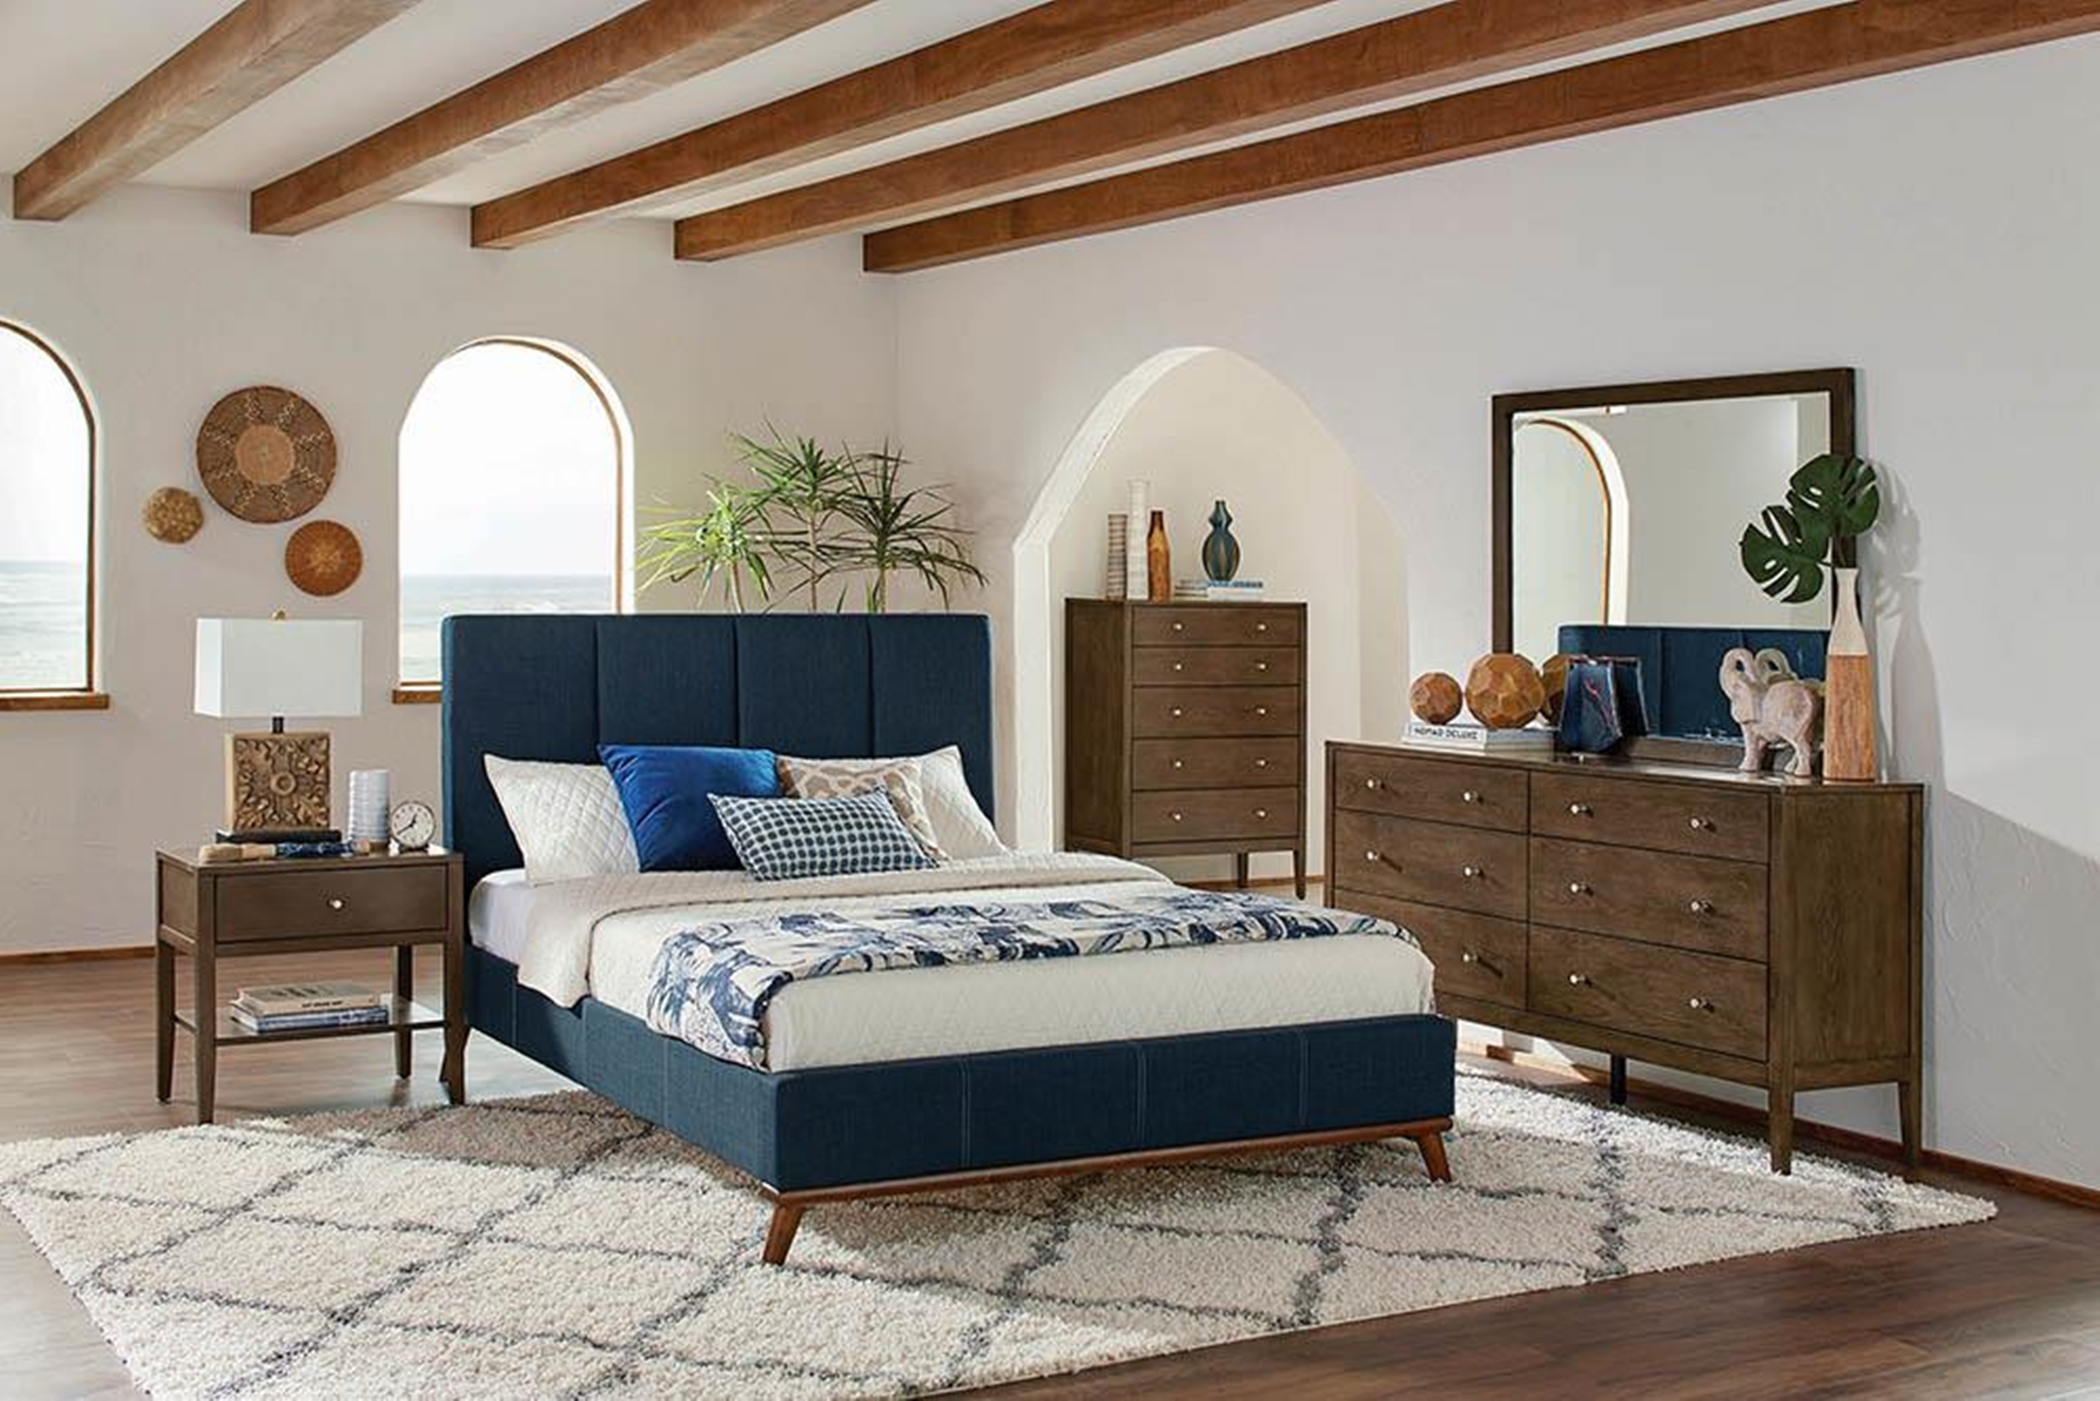 Charity Blue Upholstered King Bed